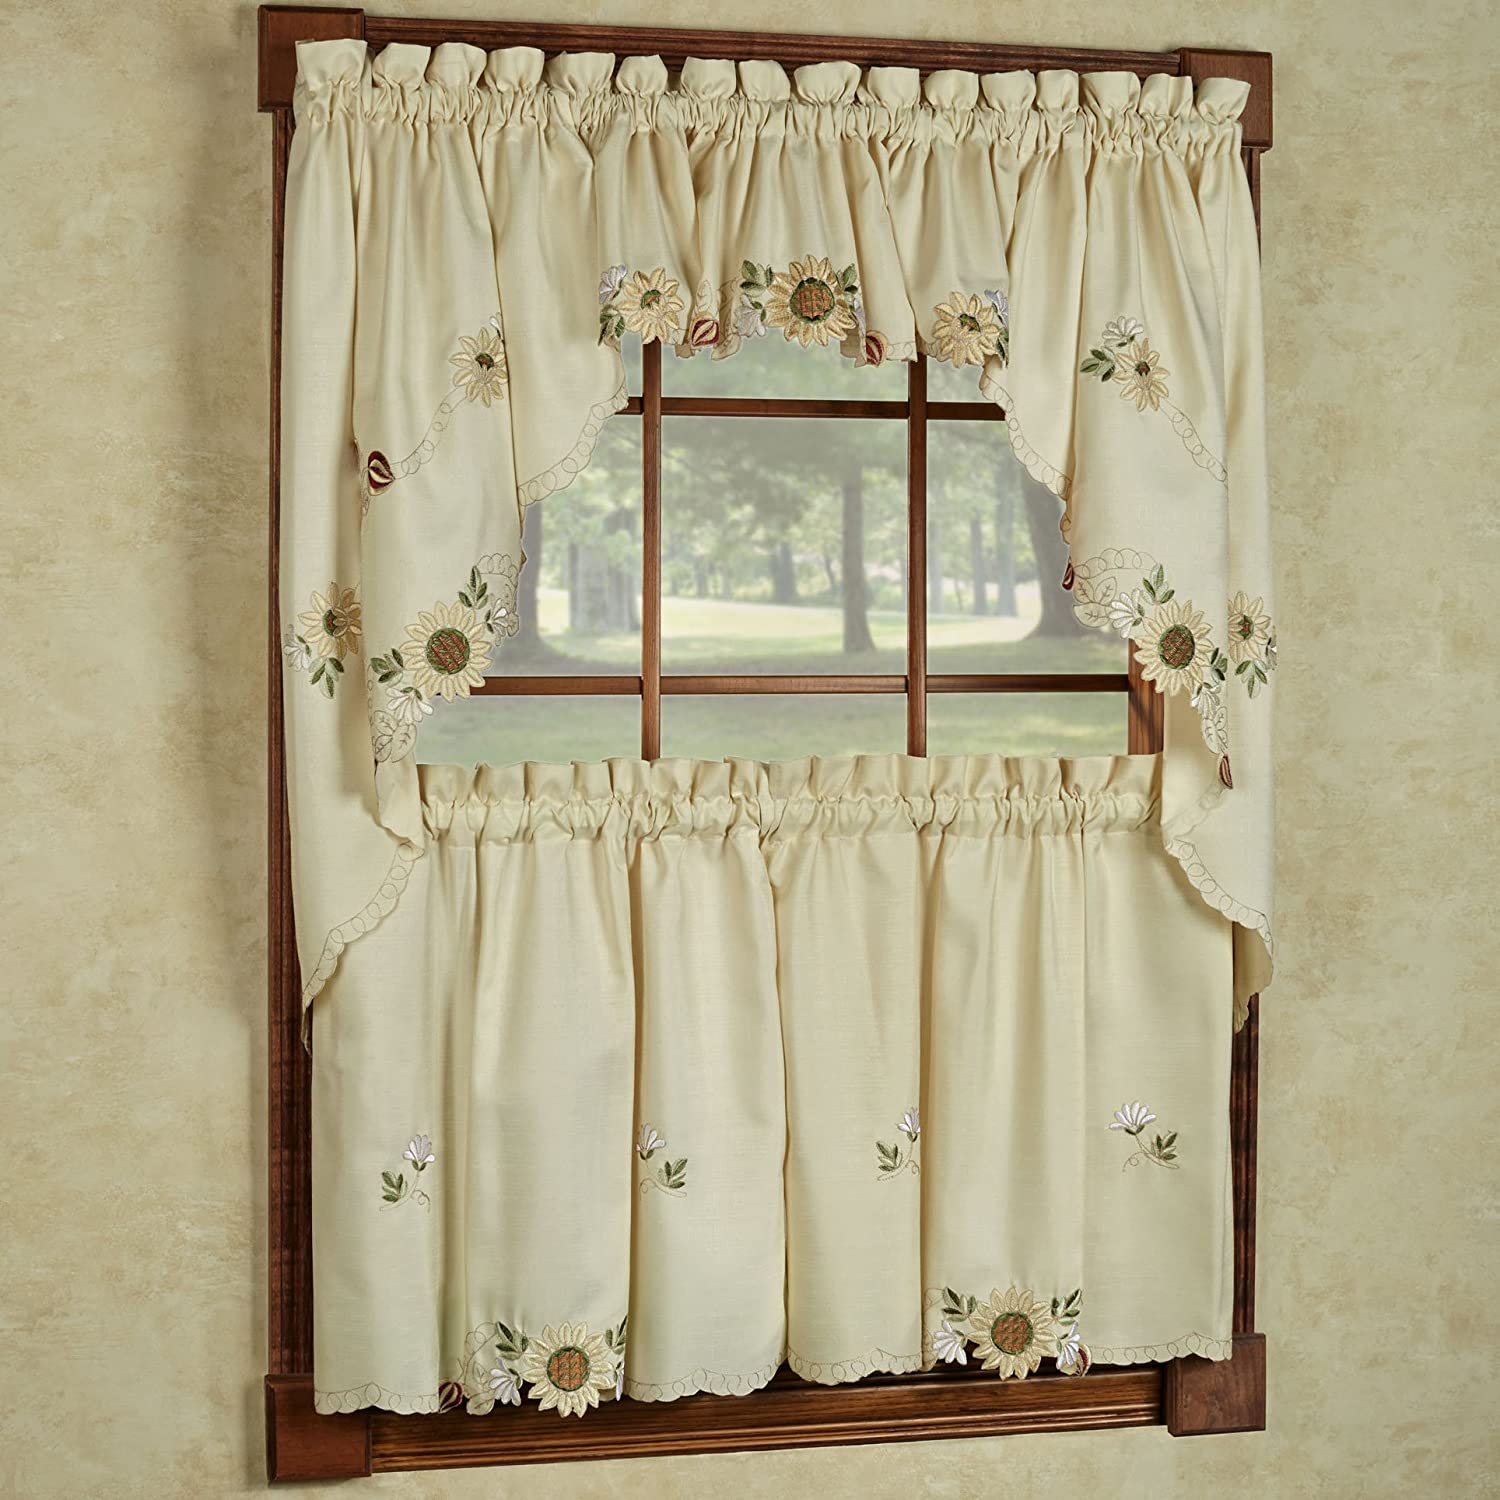 """Sweet Home Collection 5 Pc Kitchen Curtain Set, Swag Pair, Valance, Choice of 24"""" or 36"""" Tier Pair"""